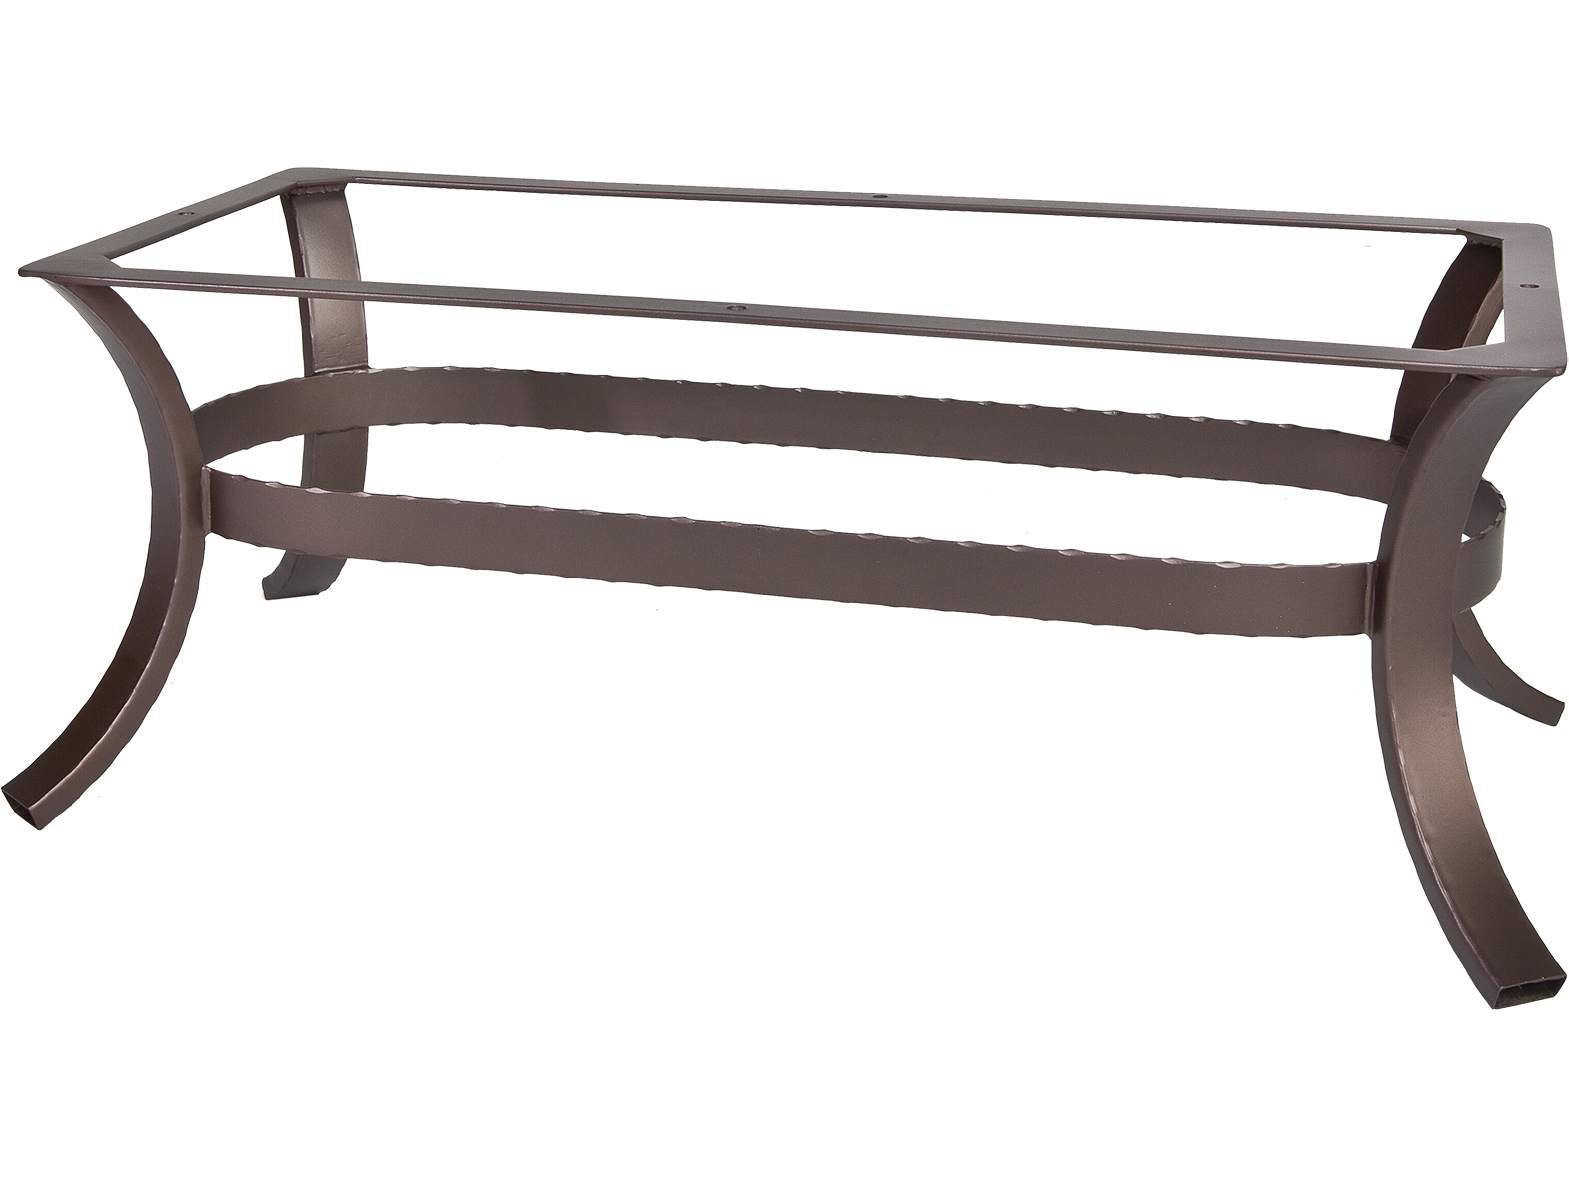 Ow lee hammered wrought iron 05 coffee table base owhiot05 for Wrought iron coffee table base